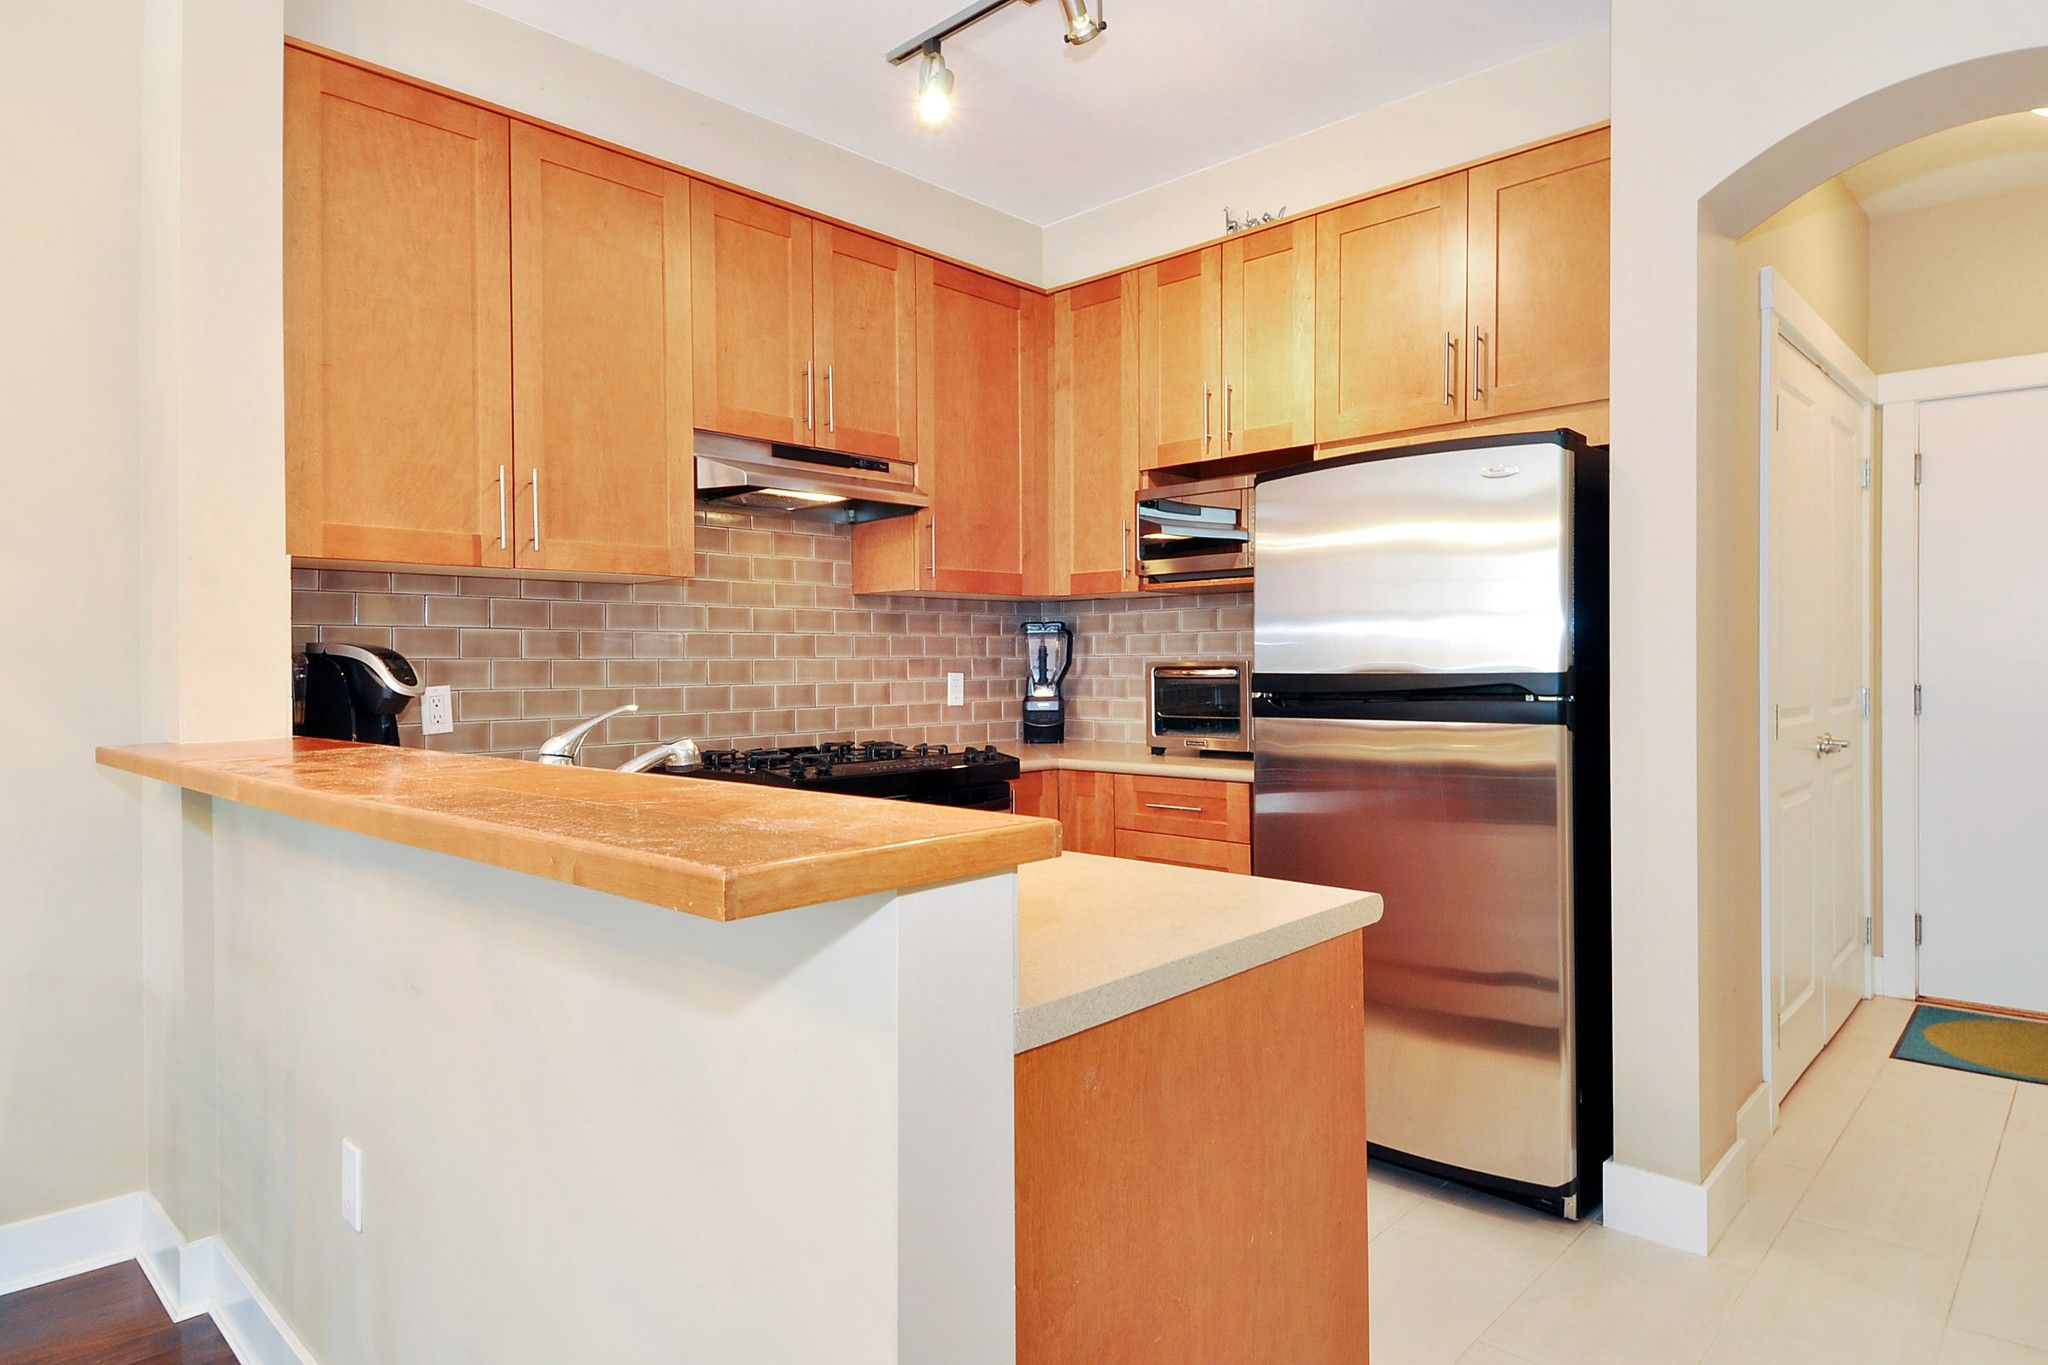 """Photo 6: Photos: 222 2083 W 33RD Avenue in Vancouver: Quilchena Condo for sale in """"DEVONSHIRE HOUSE"""" (Vancouver West)  : MLS®# R2341234"""